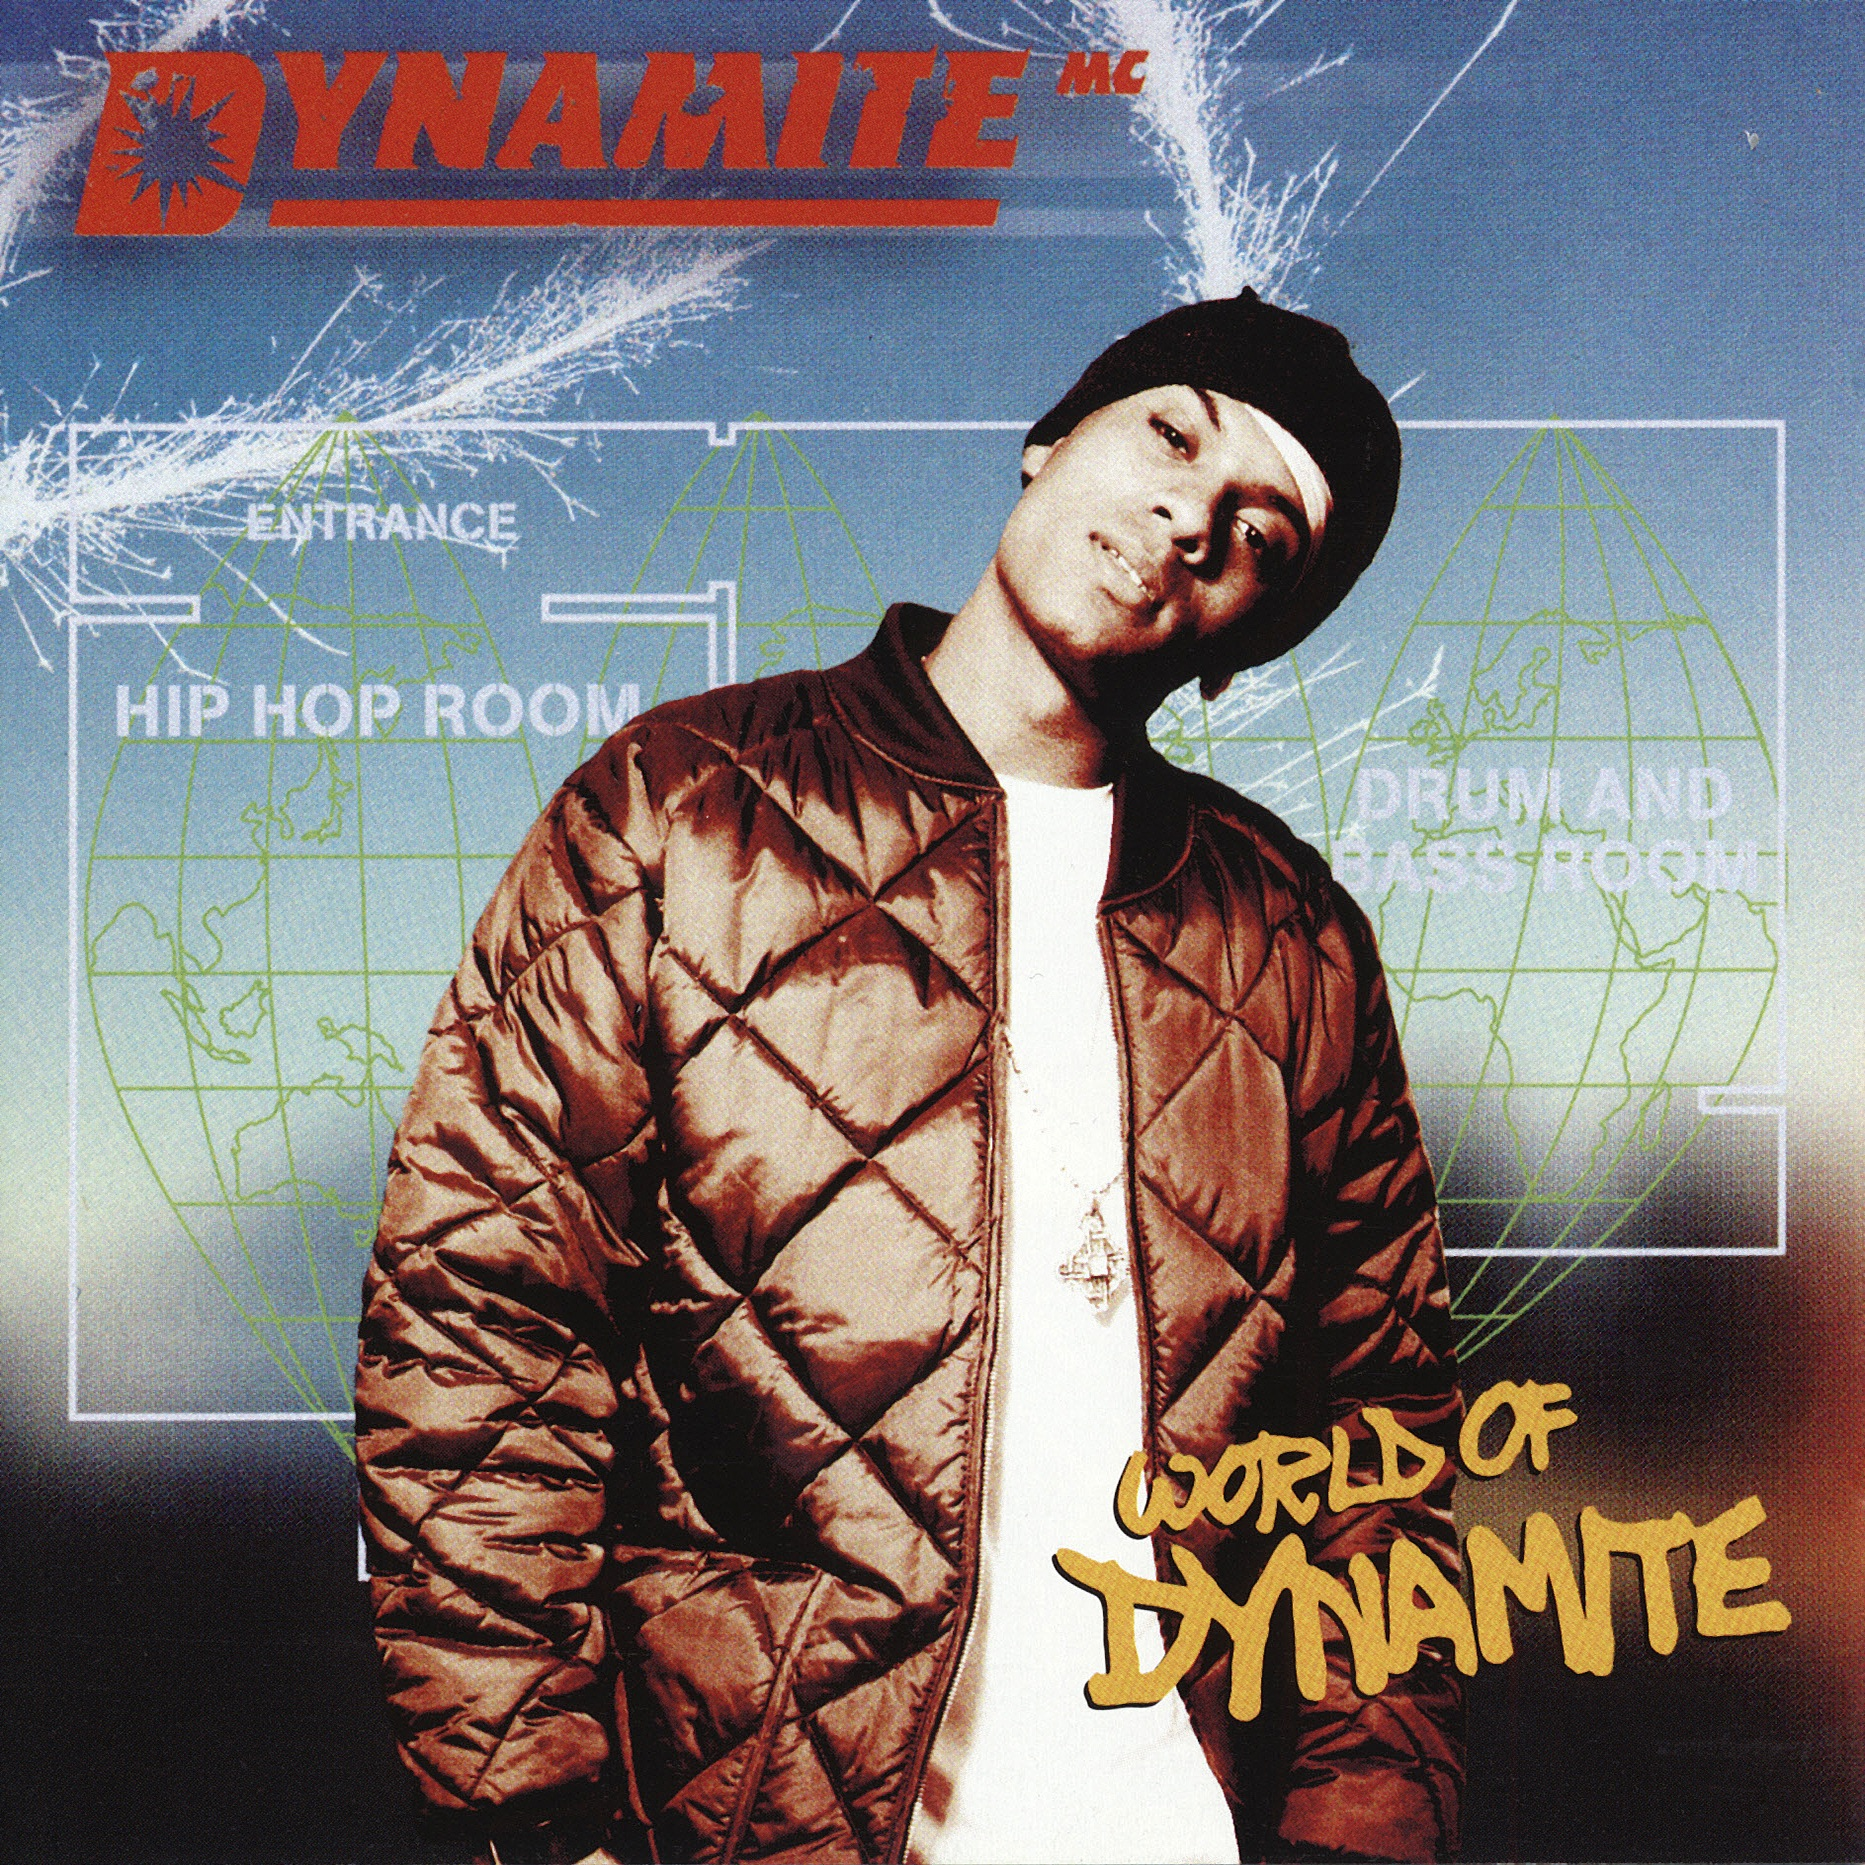 World of Dynamite (Deluxe)